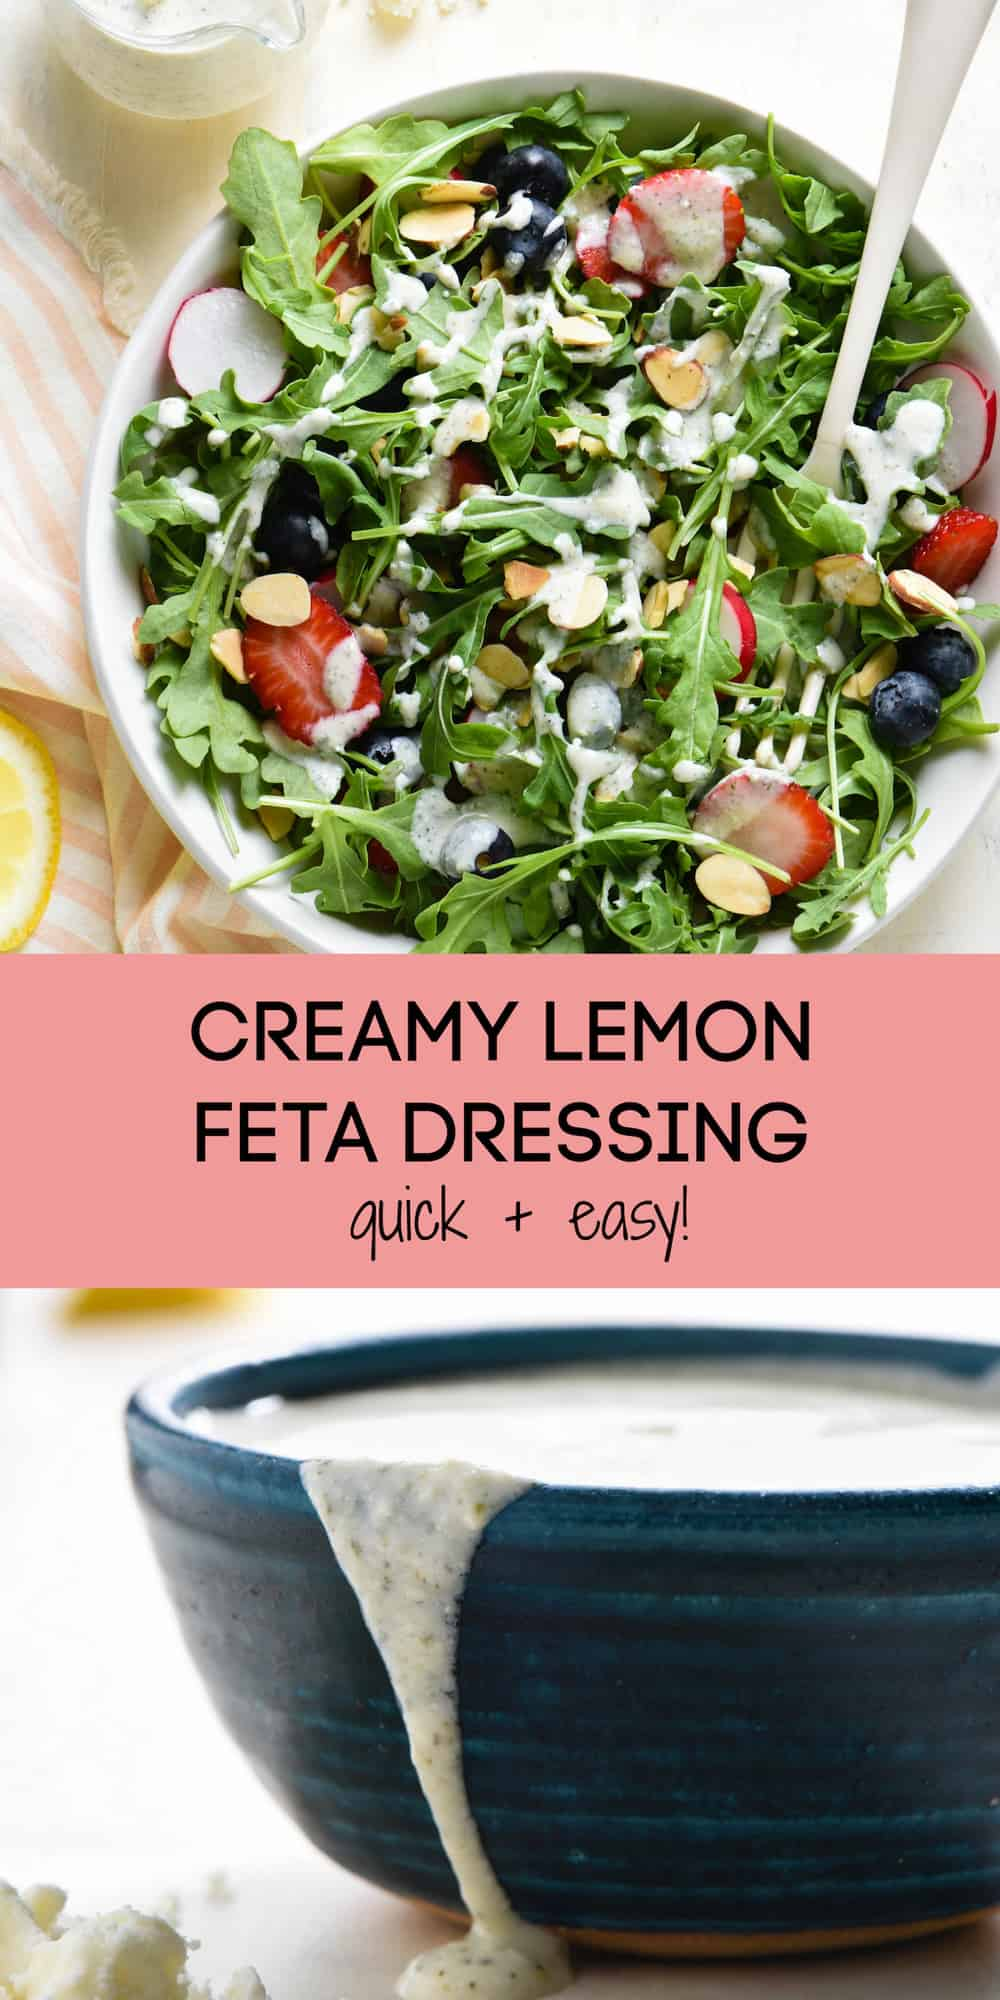 Creamy Lemon Feta Dressing - Foxes Love